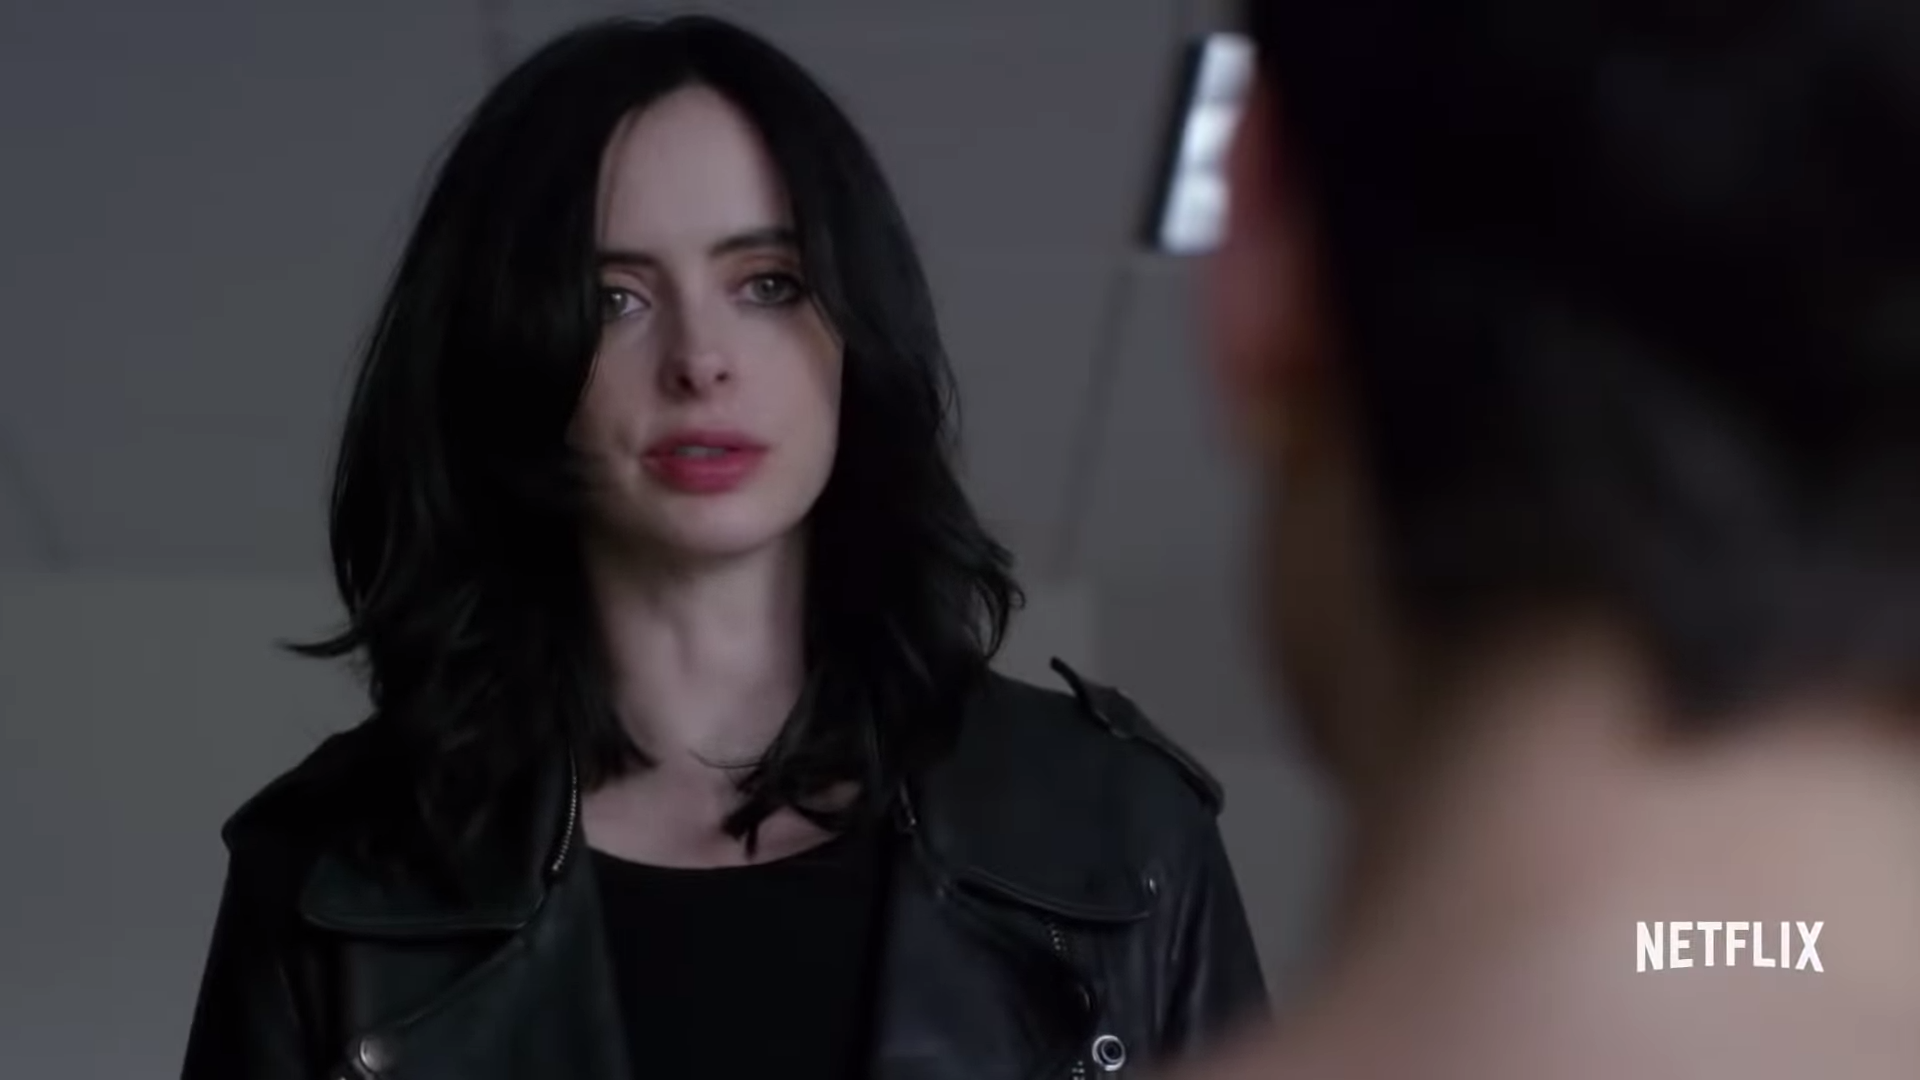 Netflix Announces Premiere Date for Final Season of Marvel's 'Jessica Jones'